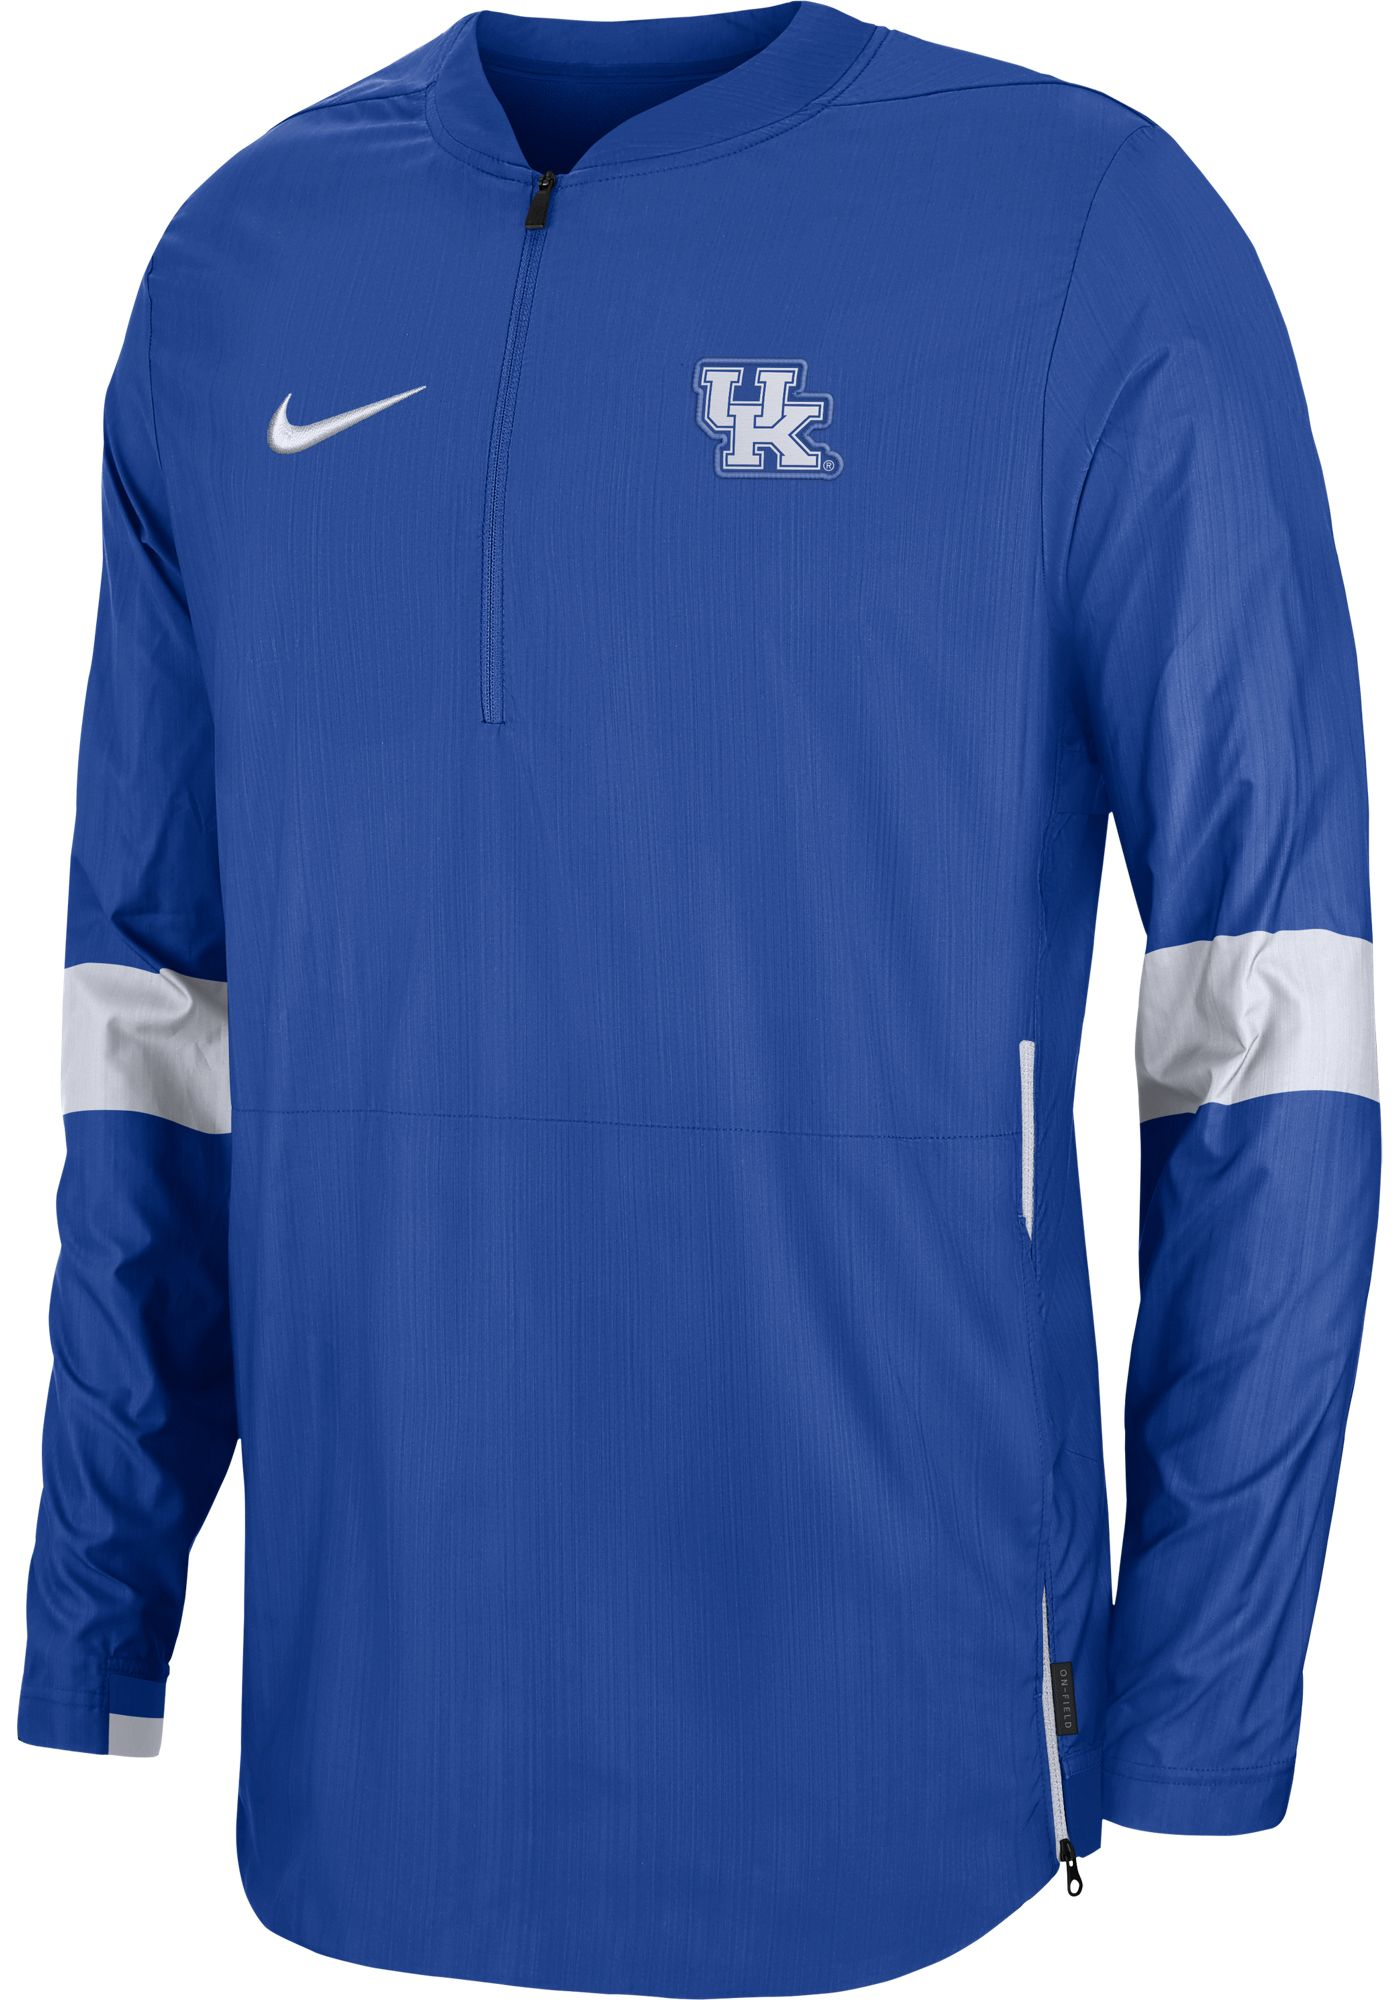 Nike Men's Kentucky Wildcats Blue Lockdown Half-Zip Football Jacket